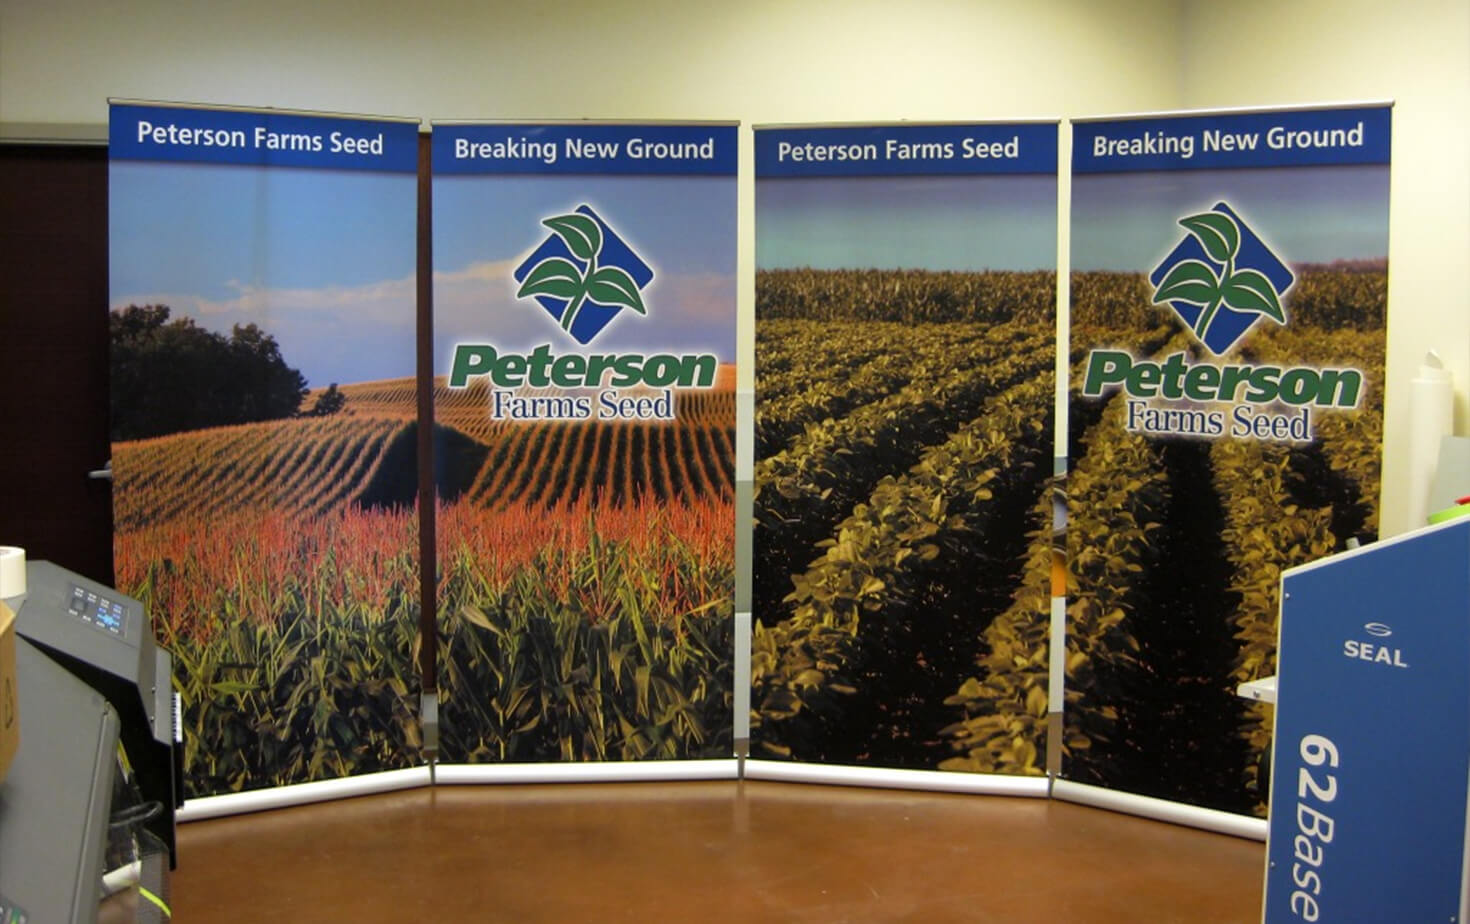 Peterson Farms Seed tradeshow banner stands